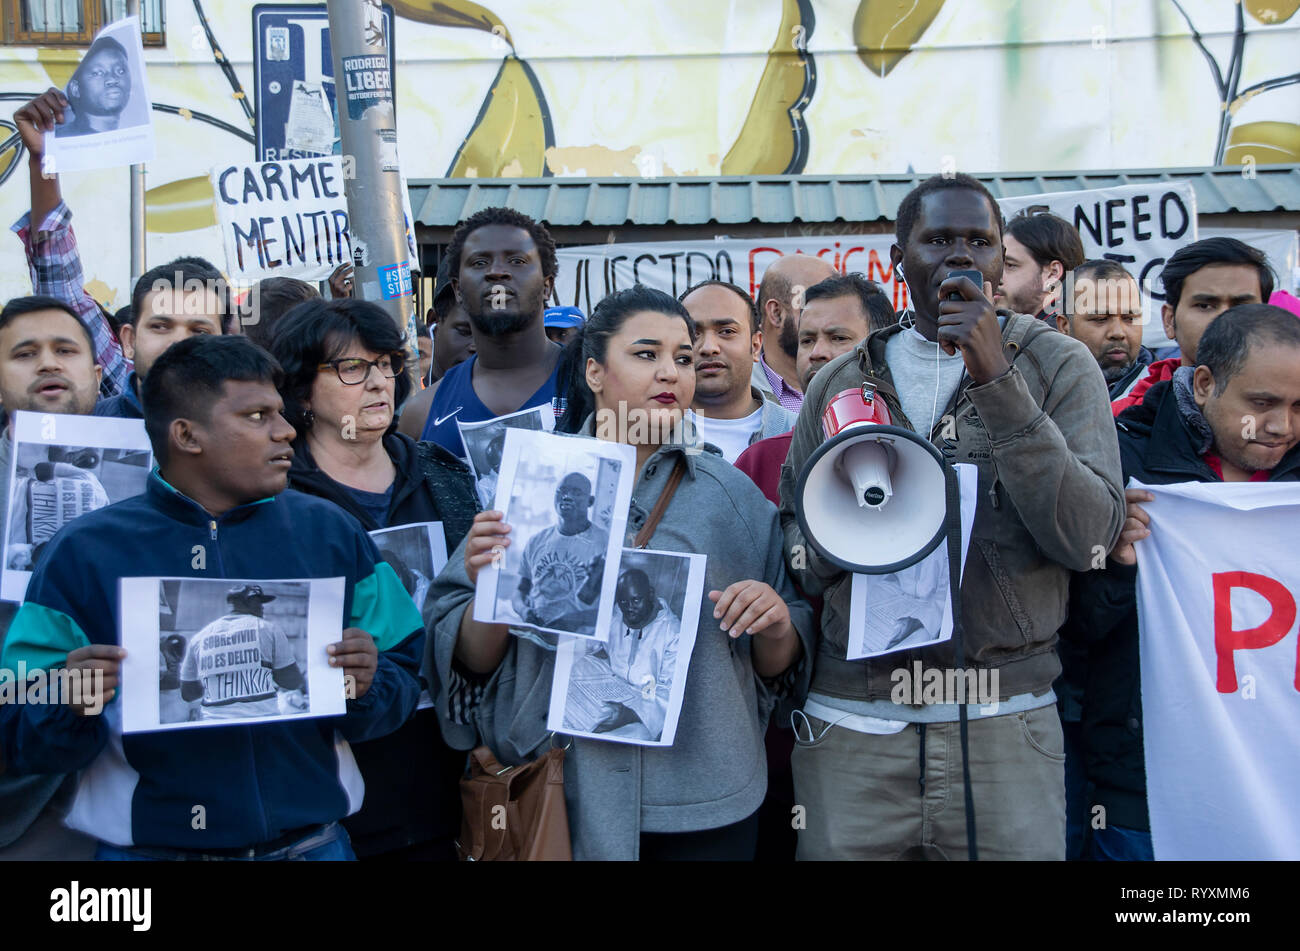 Madrid, Spain. 15th Mar 2019. A protest against institutional racism took place at Nelson Mandela square in Madrid one year after the death of Mame Mbaye, a Senegalese street vendor who died while being chased be the police for selling on the streets. According to the demonstratord, the young man did not have any legal papers despite having spent more than 10 years in Spain and authorities did not help his family after his death.   The protesters asked for justice and reported that they are constantly ignored and discriminated by Spanish authorities. Credit: Lora Grigorova/Alamy Live News - Stock Image